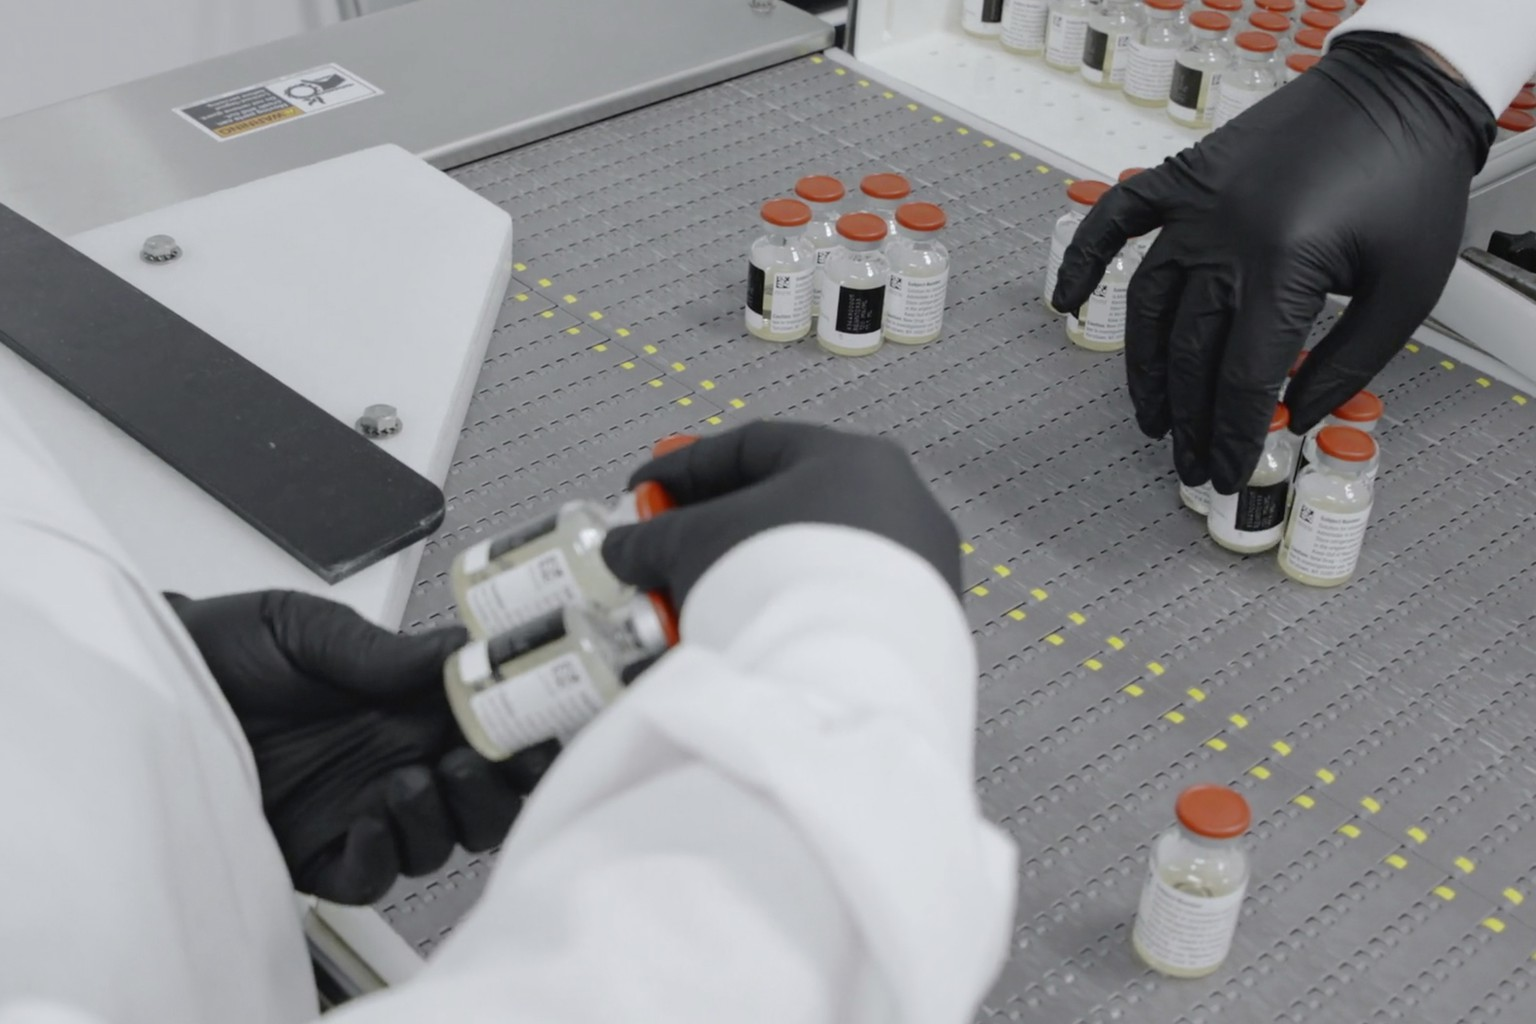 In this undated image from video provided by Regeneron Pharmaceuticals on Friday, Oct. 2, 2020, vials are inspected at the company's facilities in New York state, for efforts on an experimental coronavirus antibody drug. Antibodies are proteins the body makes when an infection occurs; they attach to a virus and help the immune system eliminate it. (Regeneron via AP)